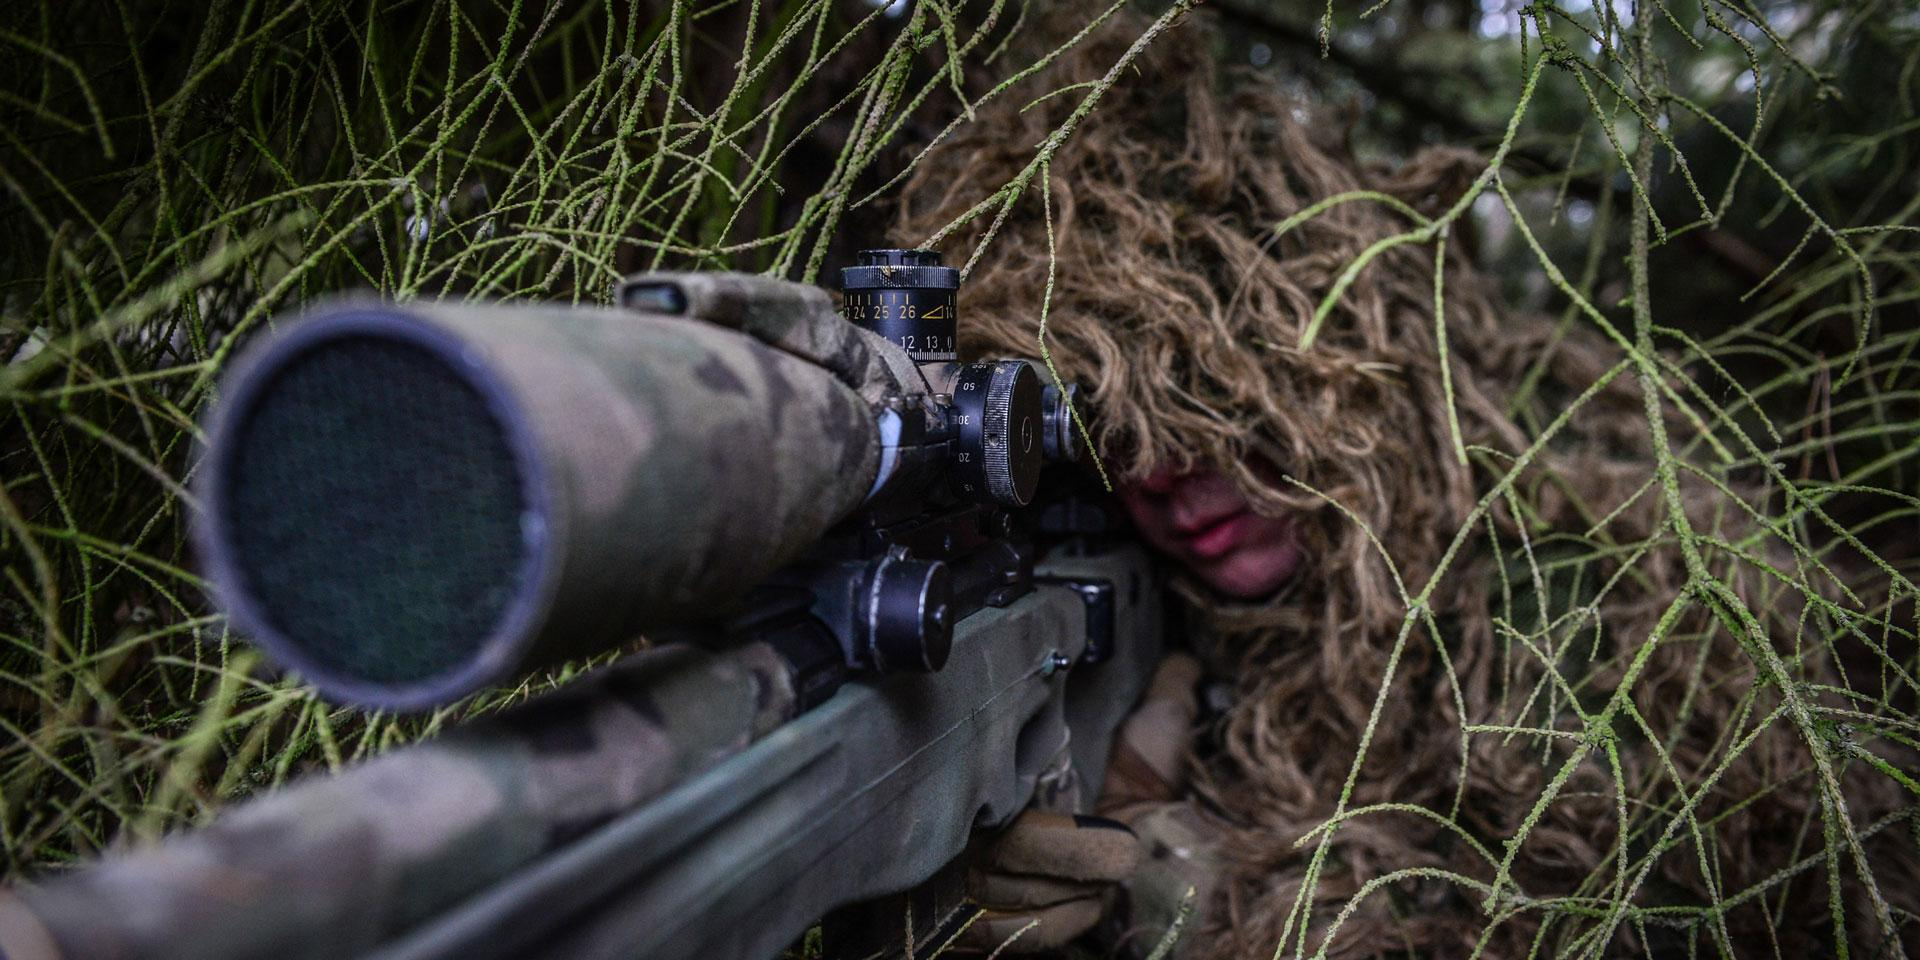 Sniper from 1st Battalion The Princess of Wales's Royal Regiment training in Germany, 2015